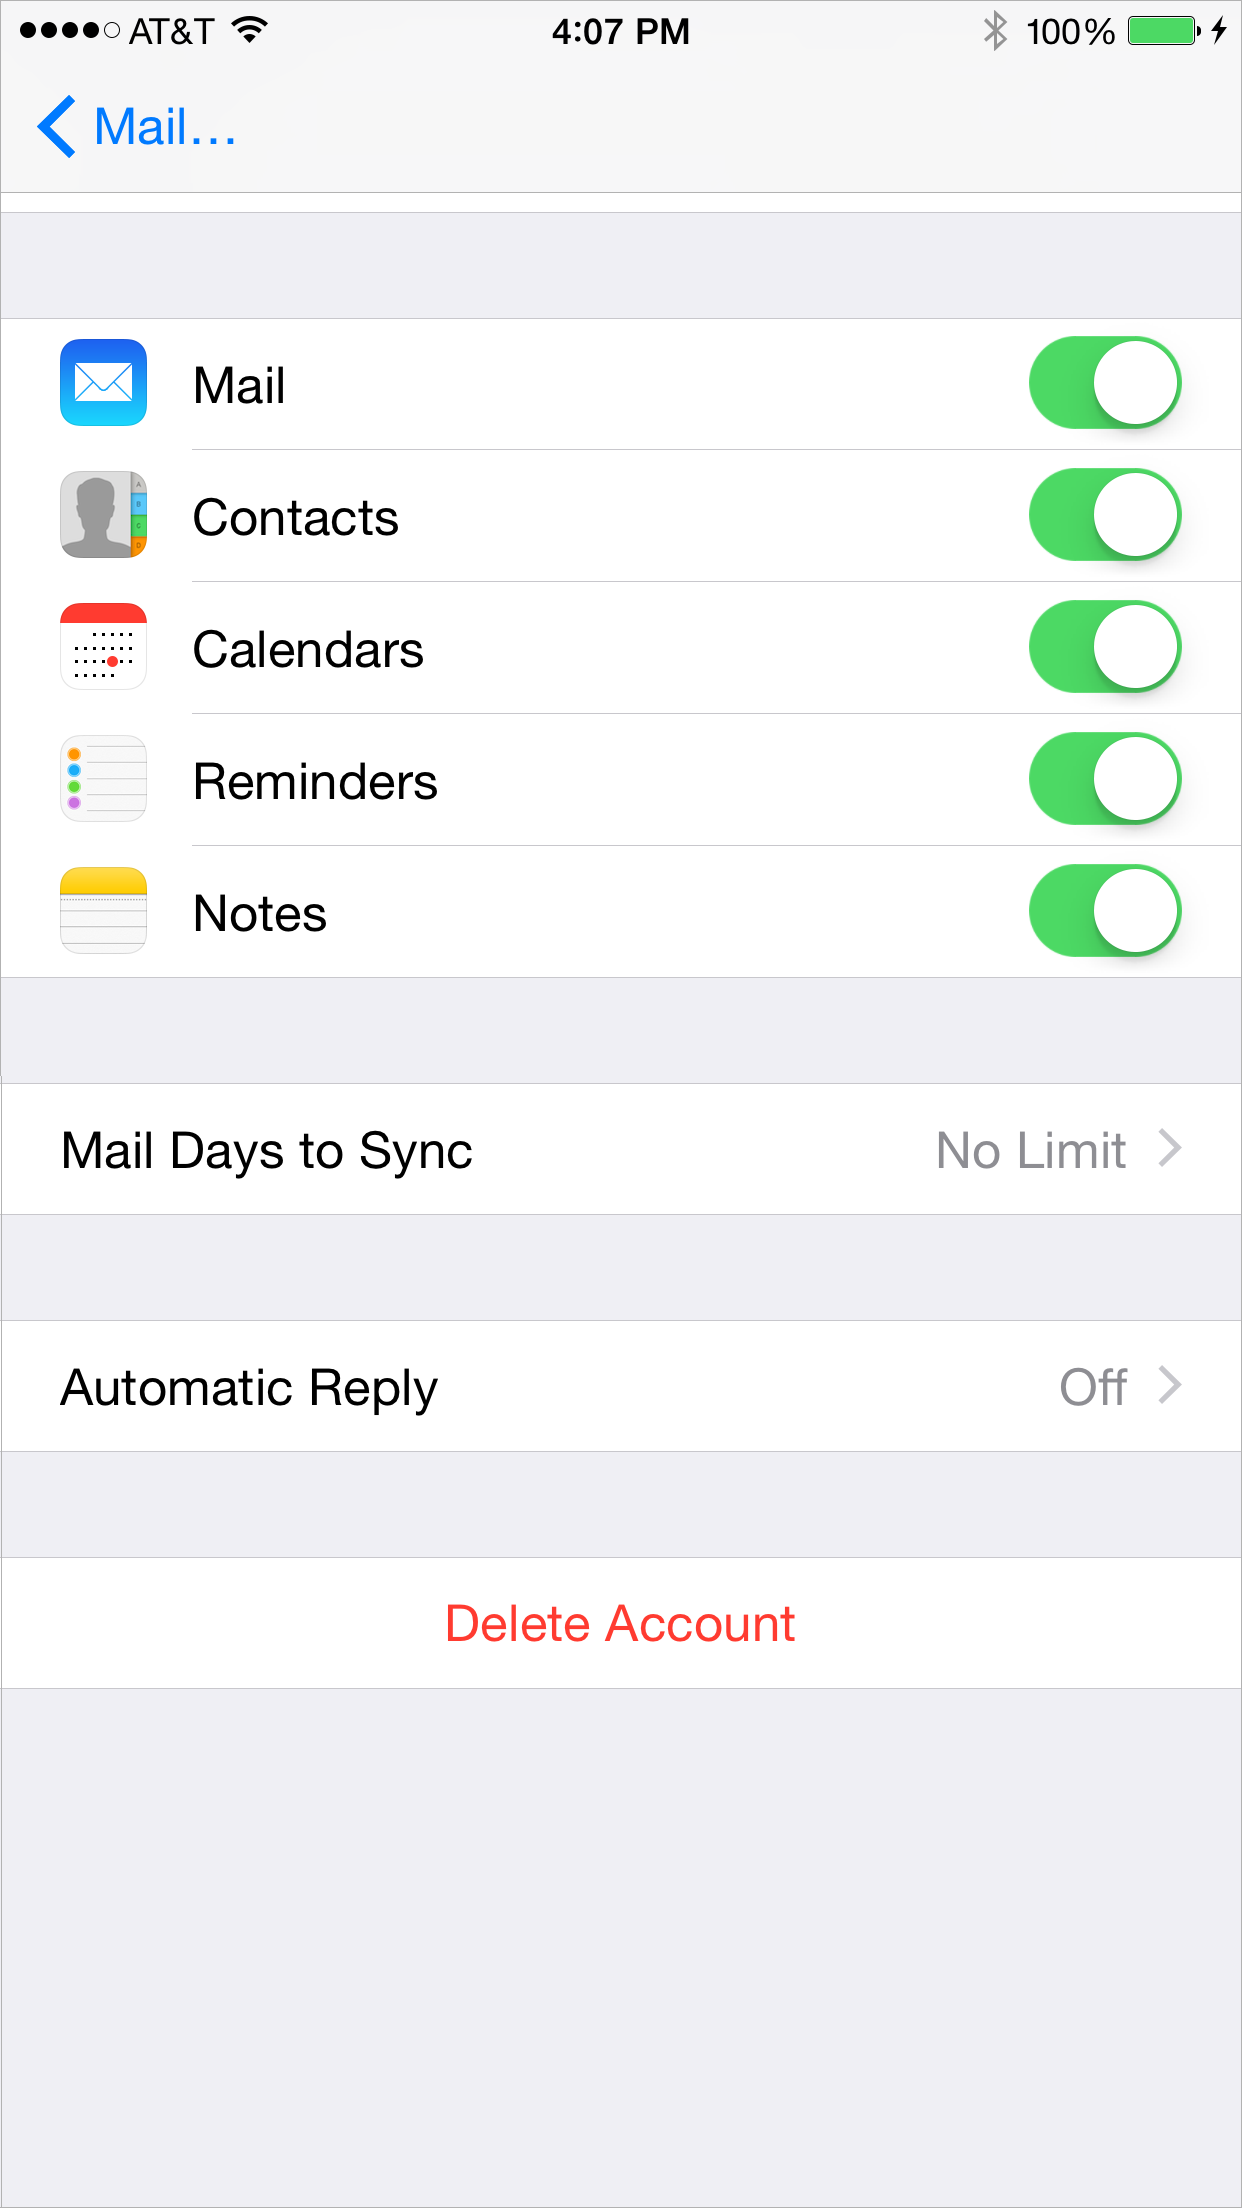 Changing the iPhone mail days to sync value